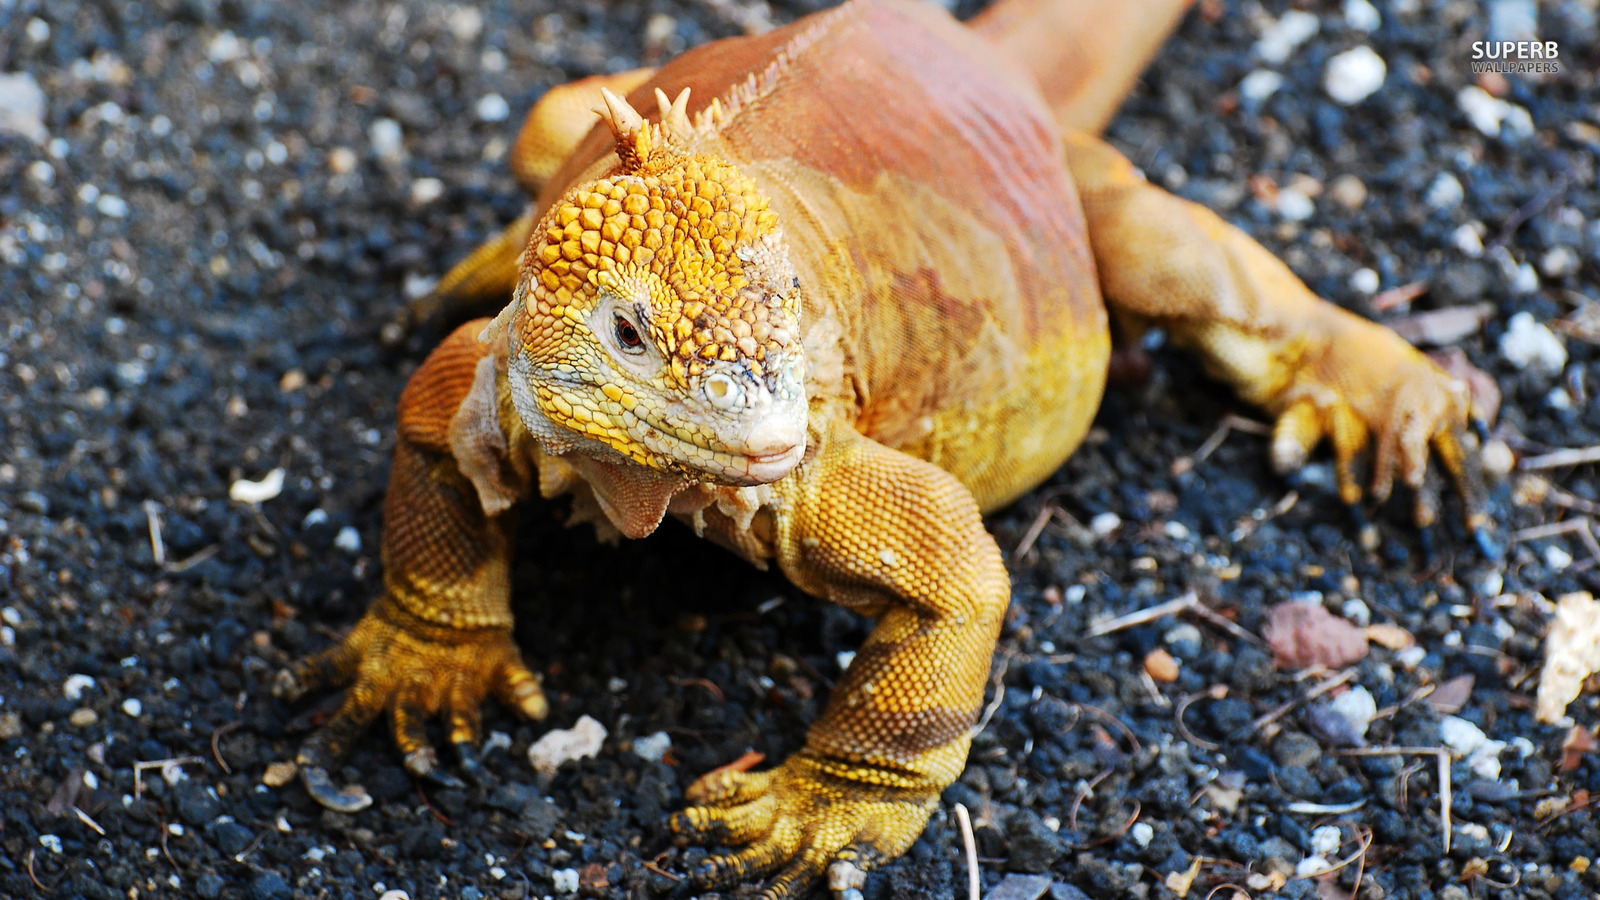 lizards images Iguana HD wallpaper and background photos 38700676 1600x900